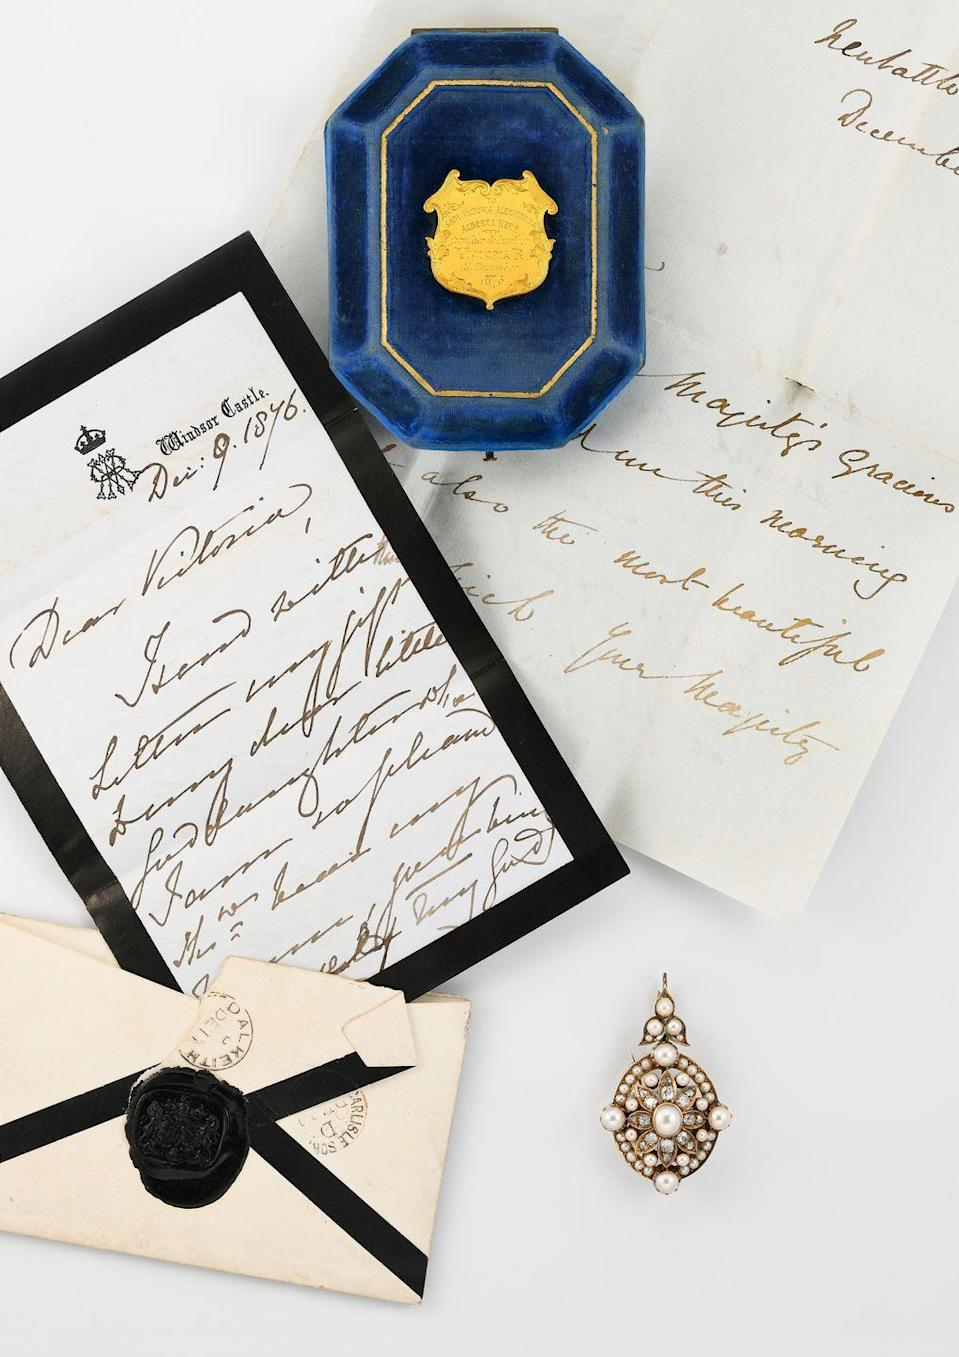 """<p>A collection of precious jewellery gifted by Queen Victoria to two of her god-daughters will go up for sale this month. The selection of pieces that once belonged to Lady Victoria Douglas-Scott, daughter of the Queen's Mistress of the Robes, the Duchess of Buccleuch, includes a gold locket, set with emeralds and diamonds in the shape of the Queen's insignia, gifted to celebrate her marriage in February 1865 to Henry Kerr, 9th Marquess of Lothian. Also for sale is a beautiful pearl and diamond brooch-pendant, offered to Lady Victoria's daughter by the Queen in December 1876 as a christening gift, accompanied by a letter from the monarch to mark the occasion. </p><p>The Jewellery, Silver, Watches and Wine sale will take place on 5 November at <a href=""""https://www.cheffins.co.uk/fine-art/catalogue-view,the-jewellery-silver-watches-sale_174.htm"""" rel=""""nofollow noopener"""" target=""""_blank"""" data-ylk=""""slk:Cheffins"""" class=""""link rapid-noclick-resp"""">Cheffins</a>, Cambridge.</p>"""